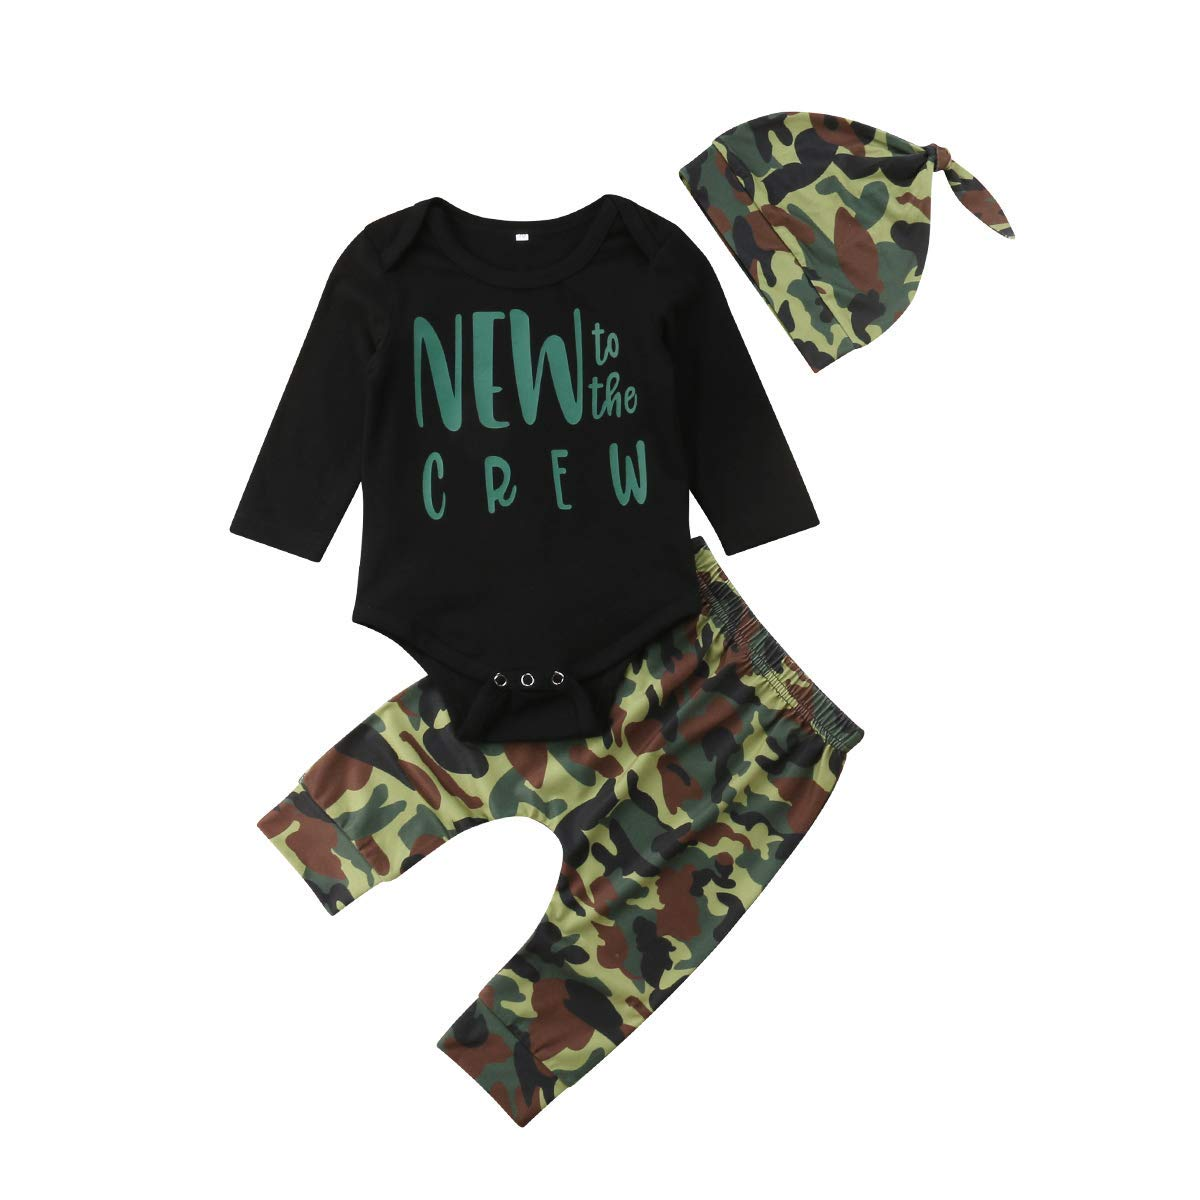 e0e74f73 Get Quotations · Baby Boy Girl Outfits Clothes New to The Crew Long Sleeve  Romper Bodysuits Camouflage Legging Pants